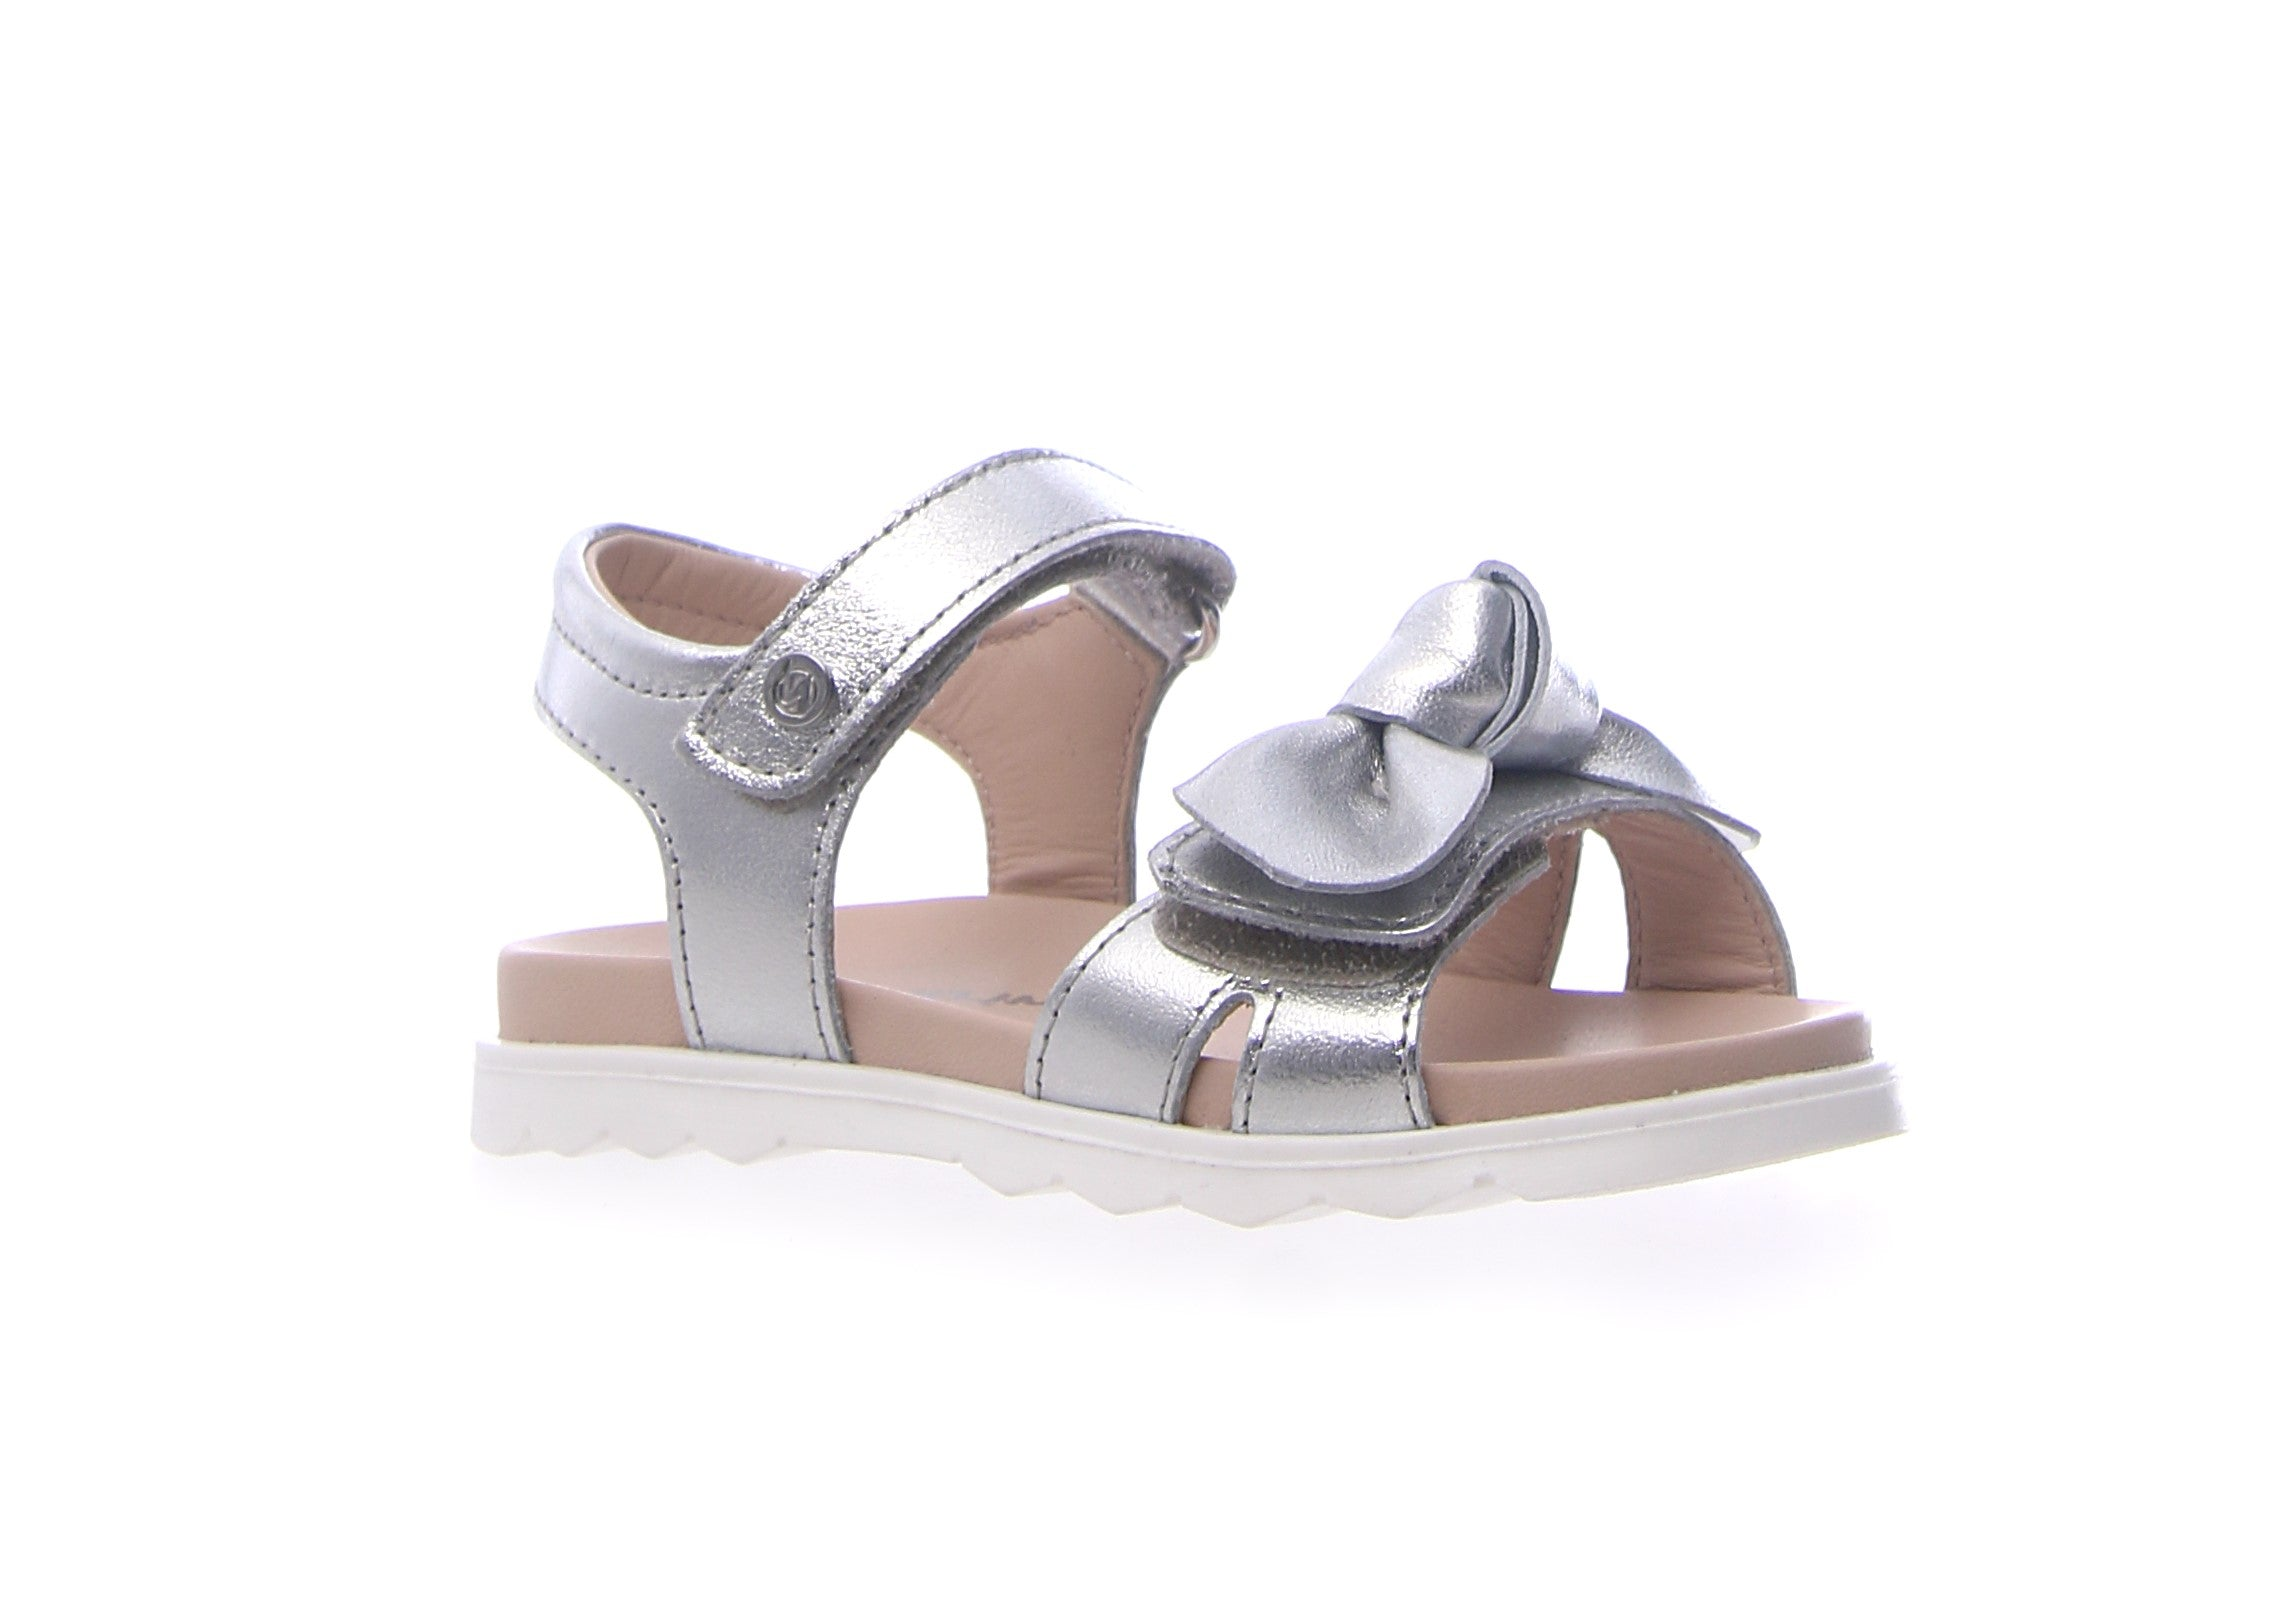 Naturino Silver Sandal with Bow